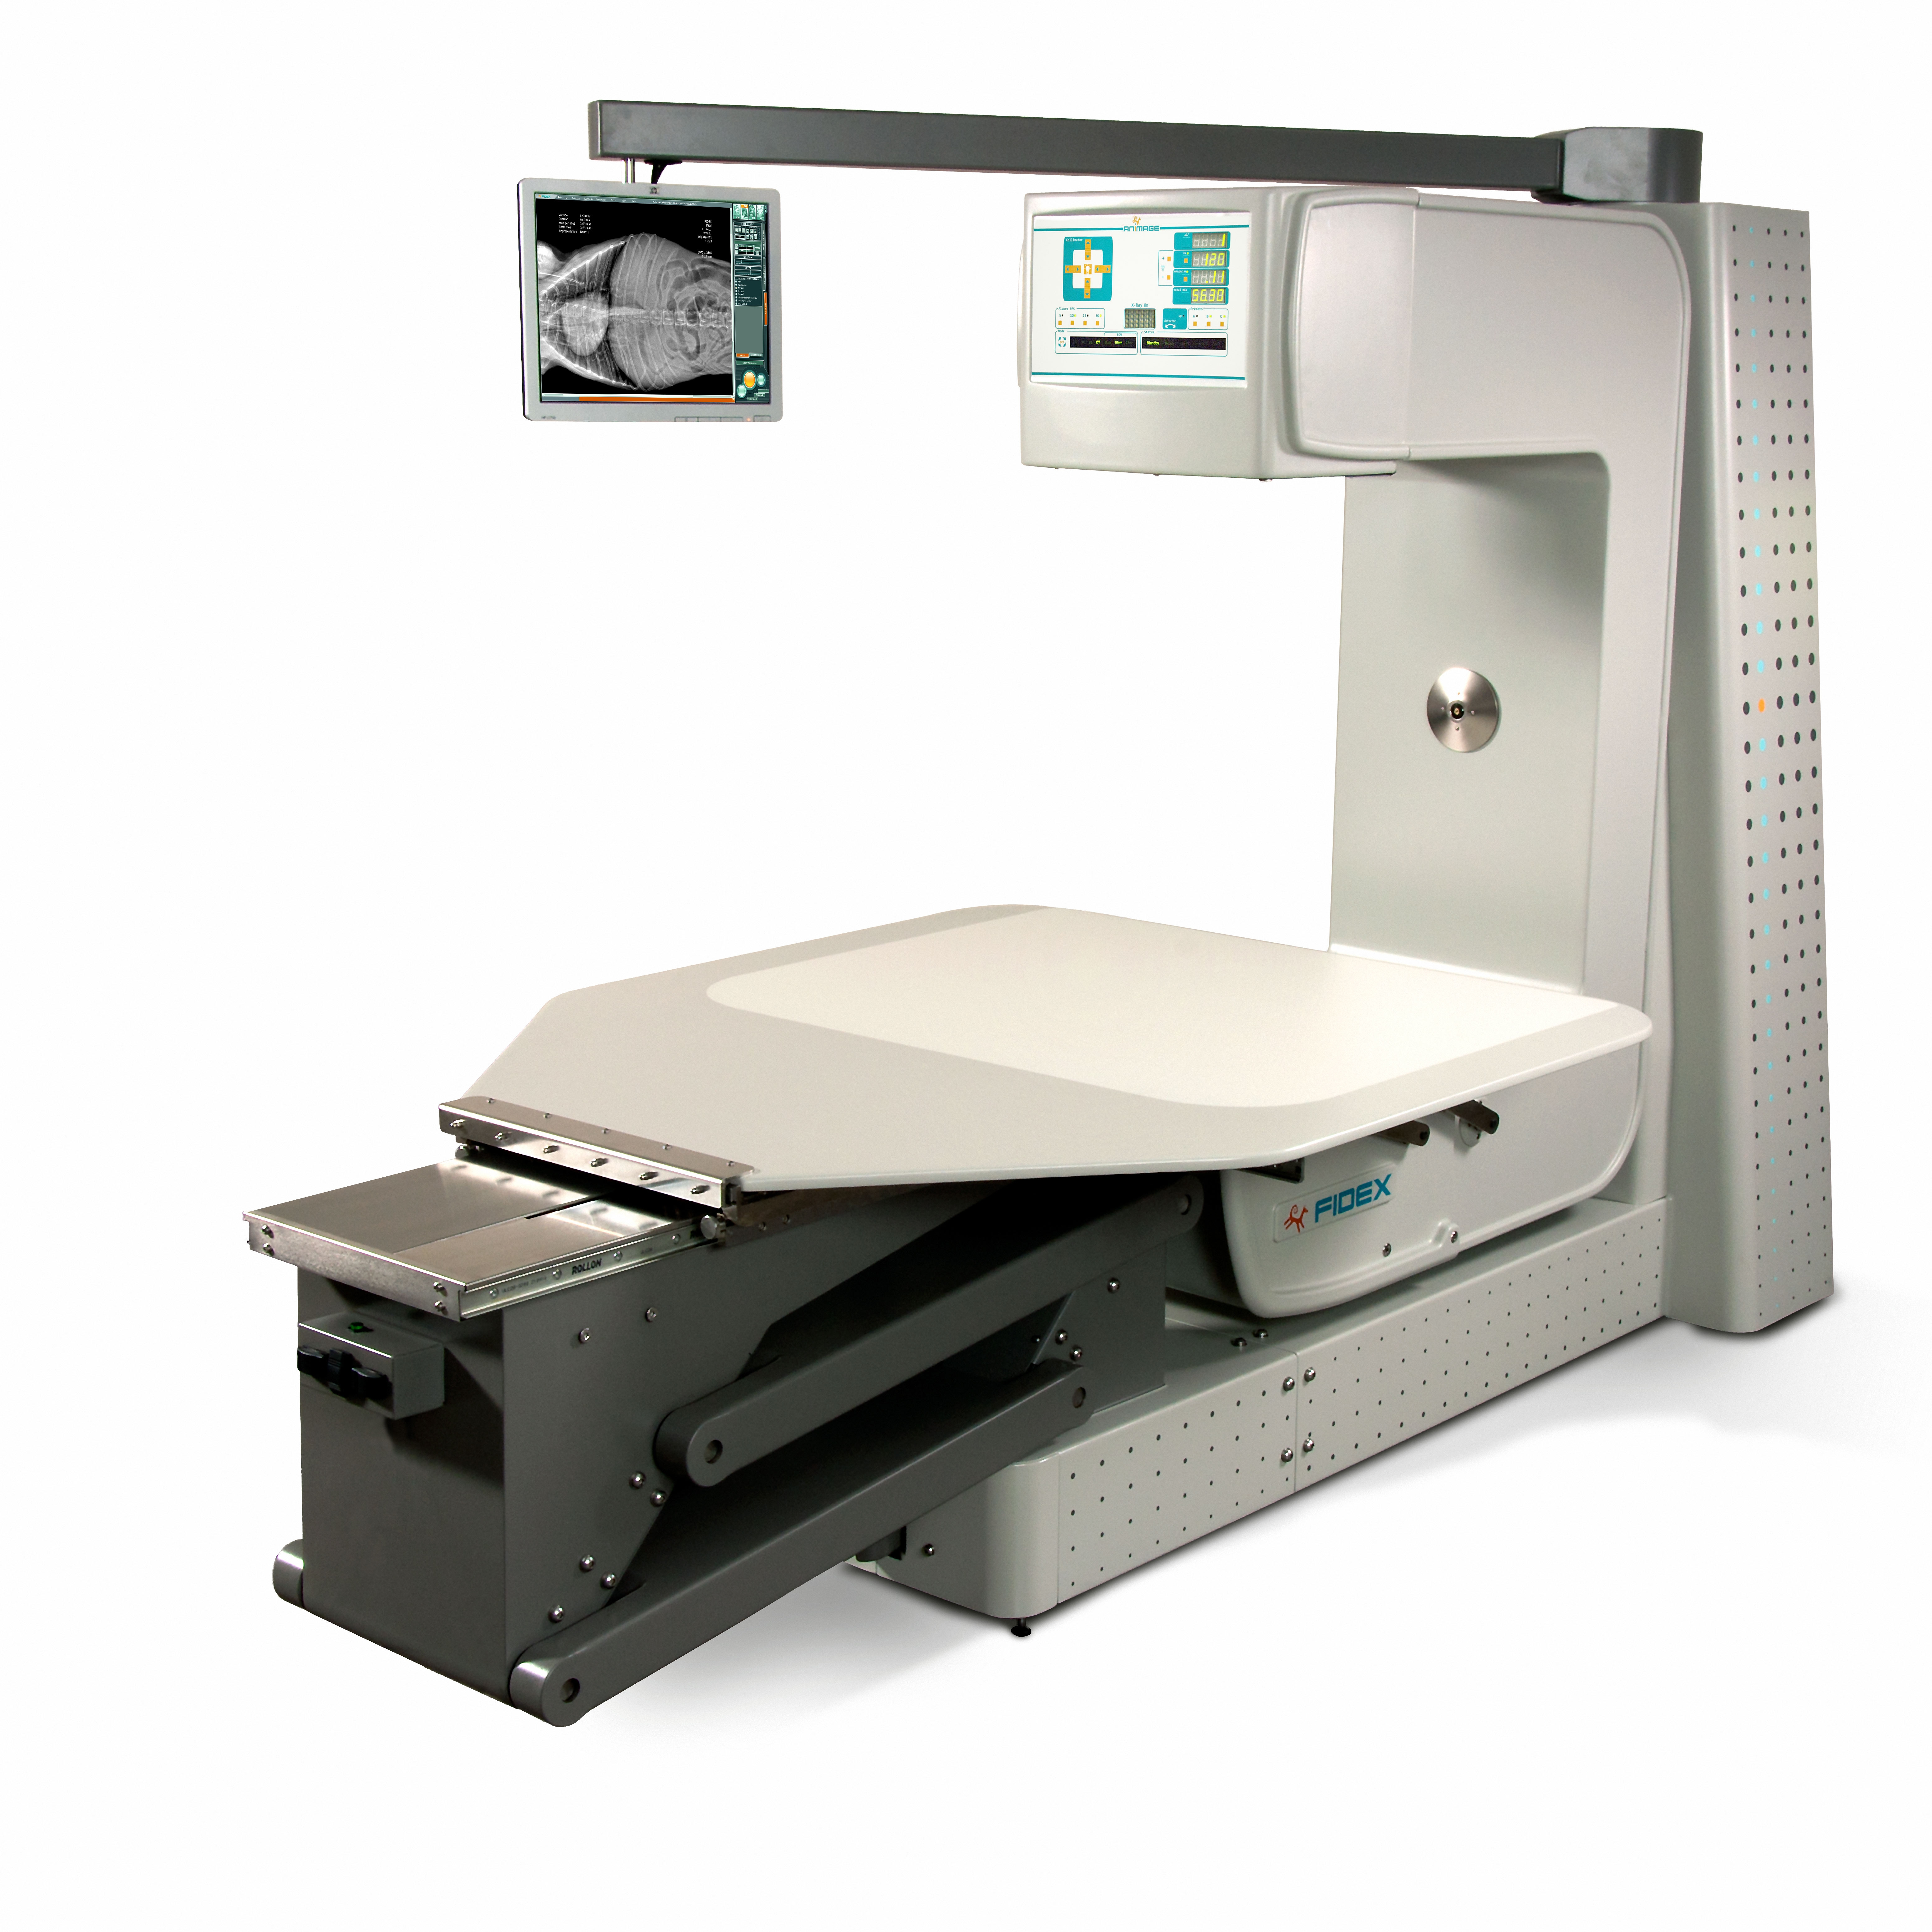 Fidex Animal CT, large panel DR and Fluoroscopy - MD